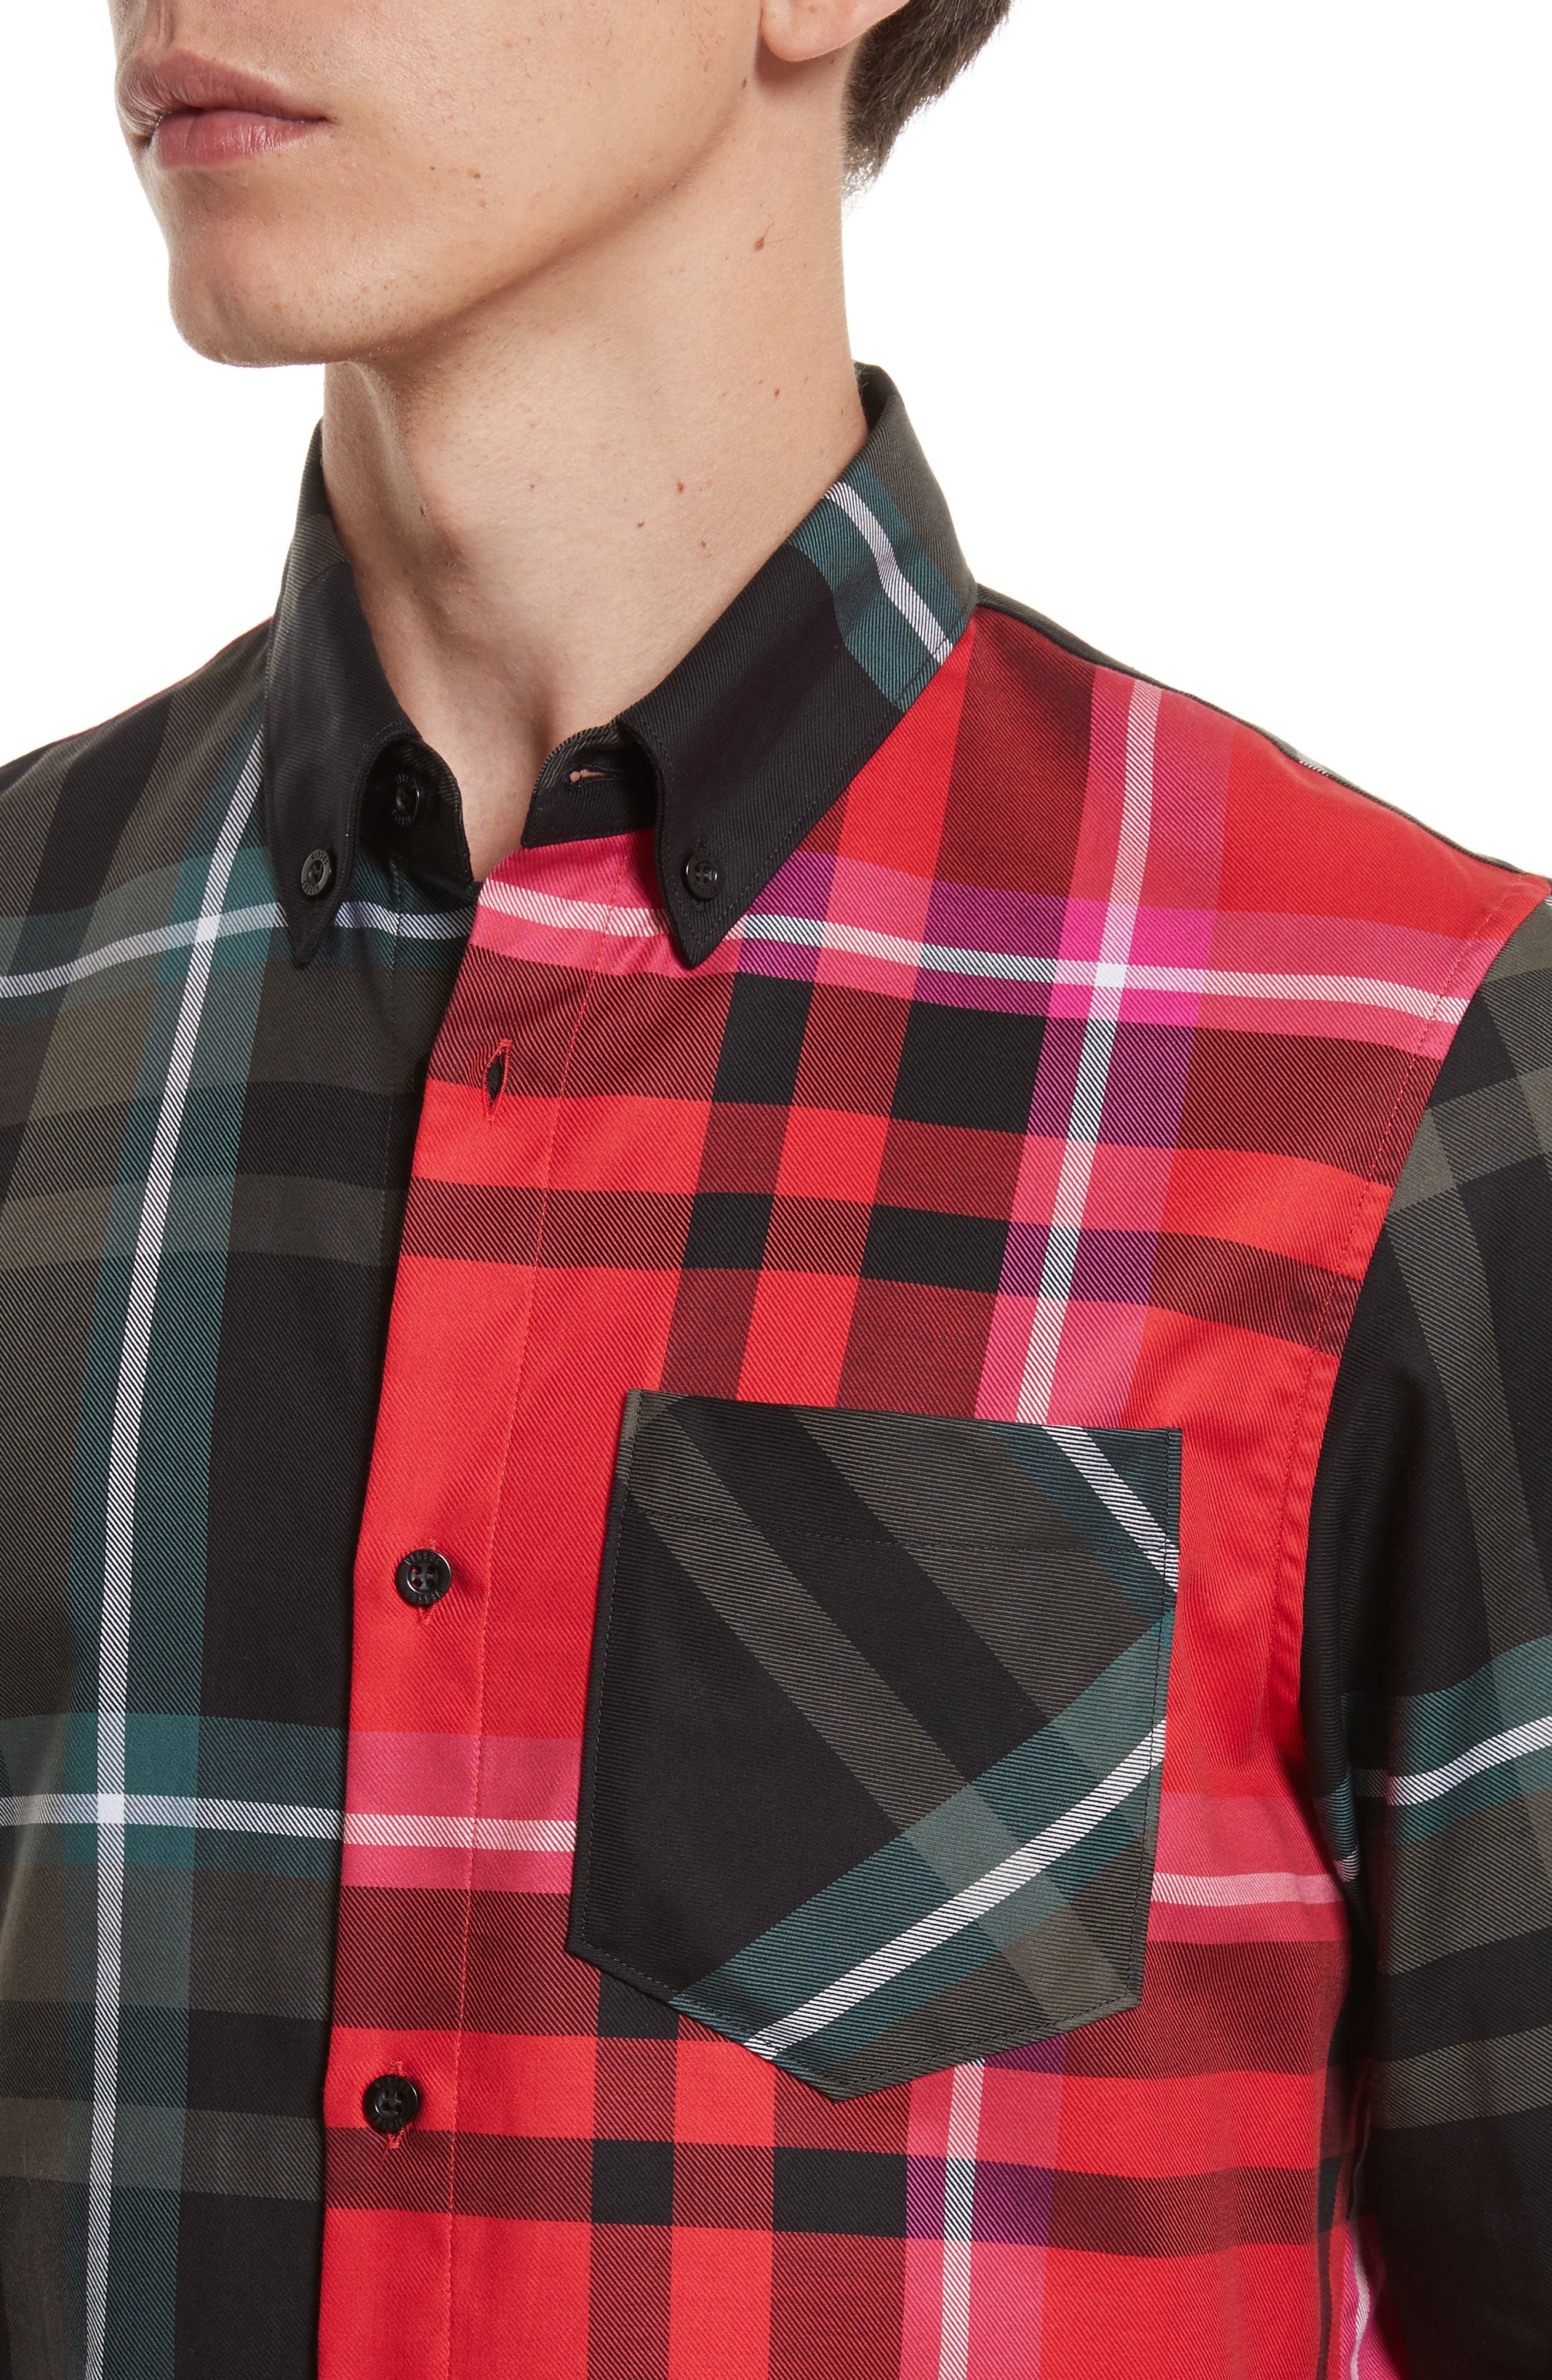 VERSUS by Versace Plaid Woven Shirt,                             Alternate thumbnail 4, color,                             Red Multi